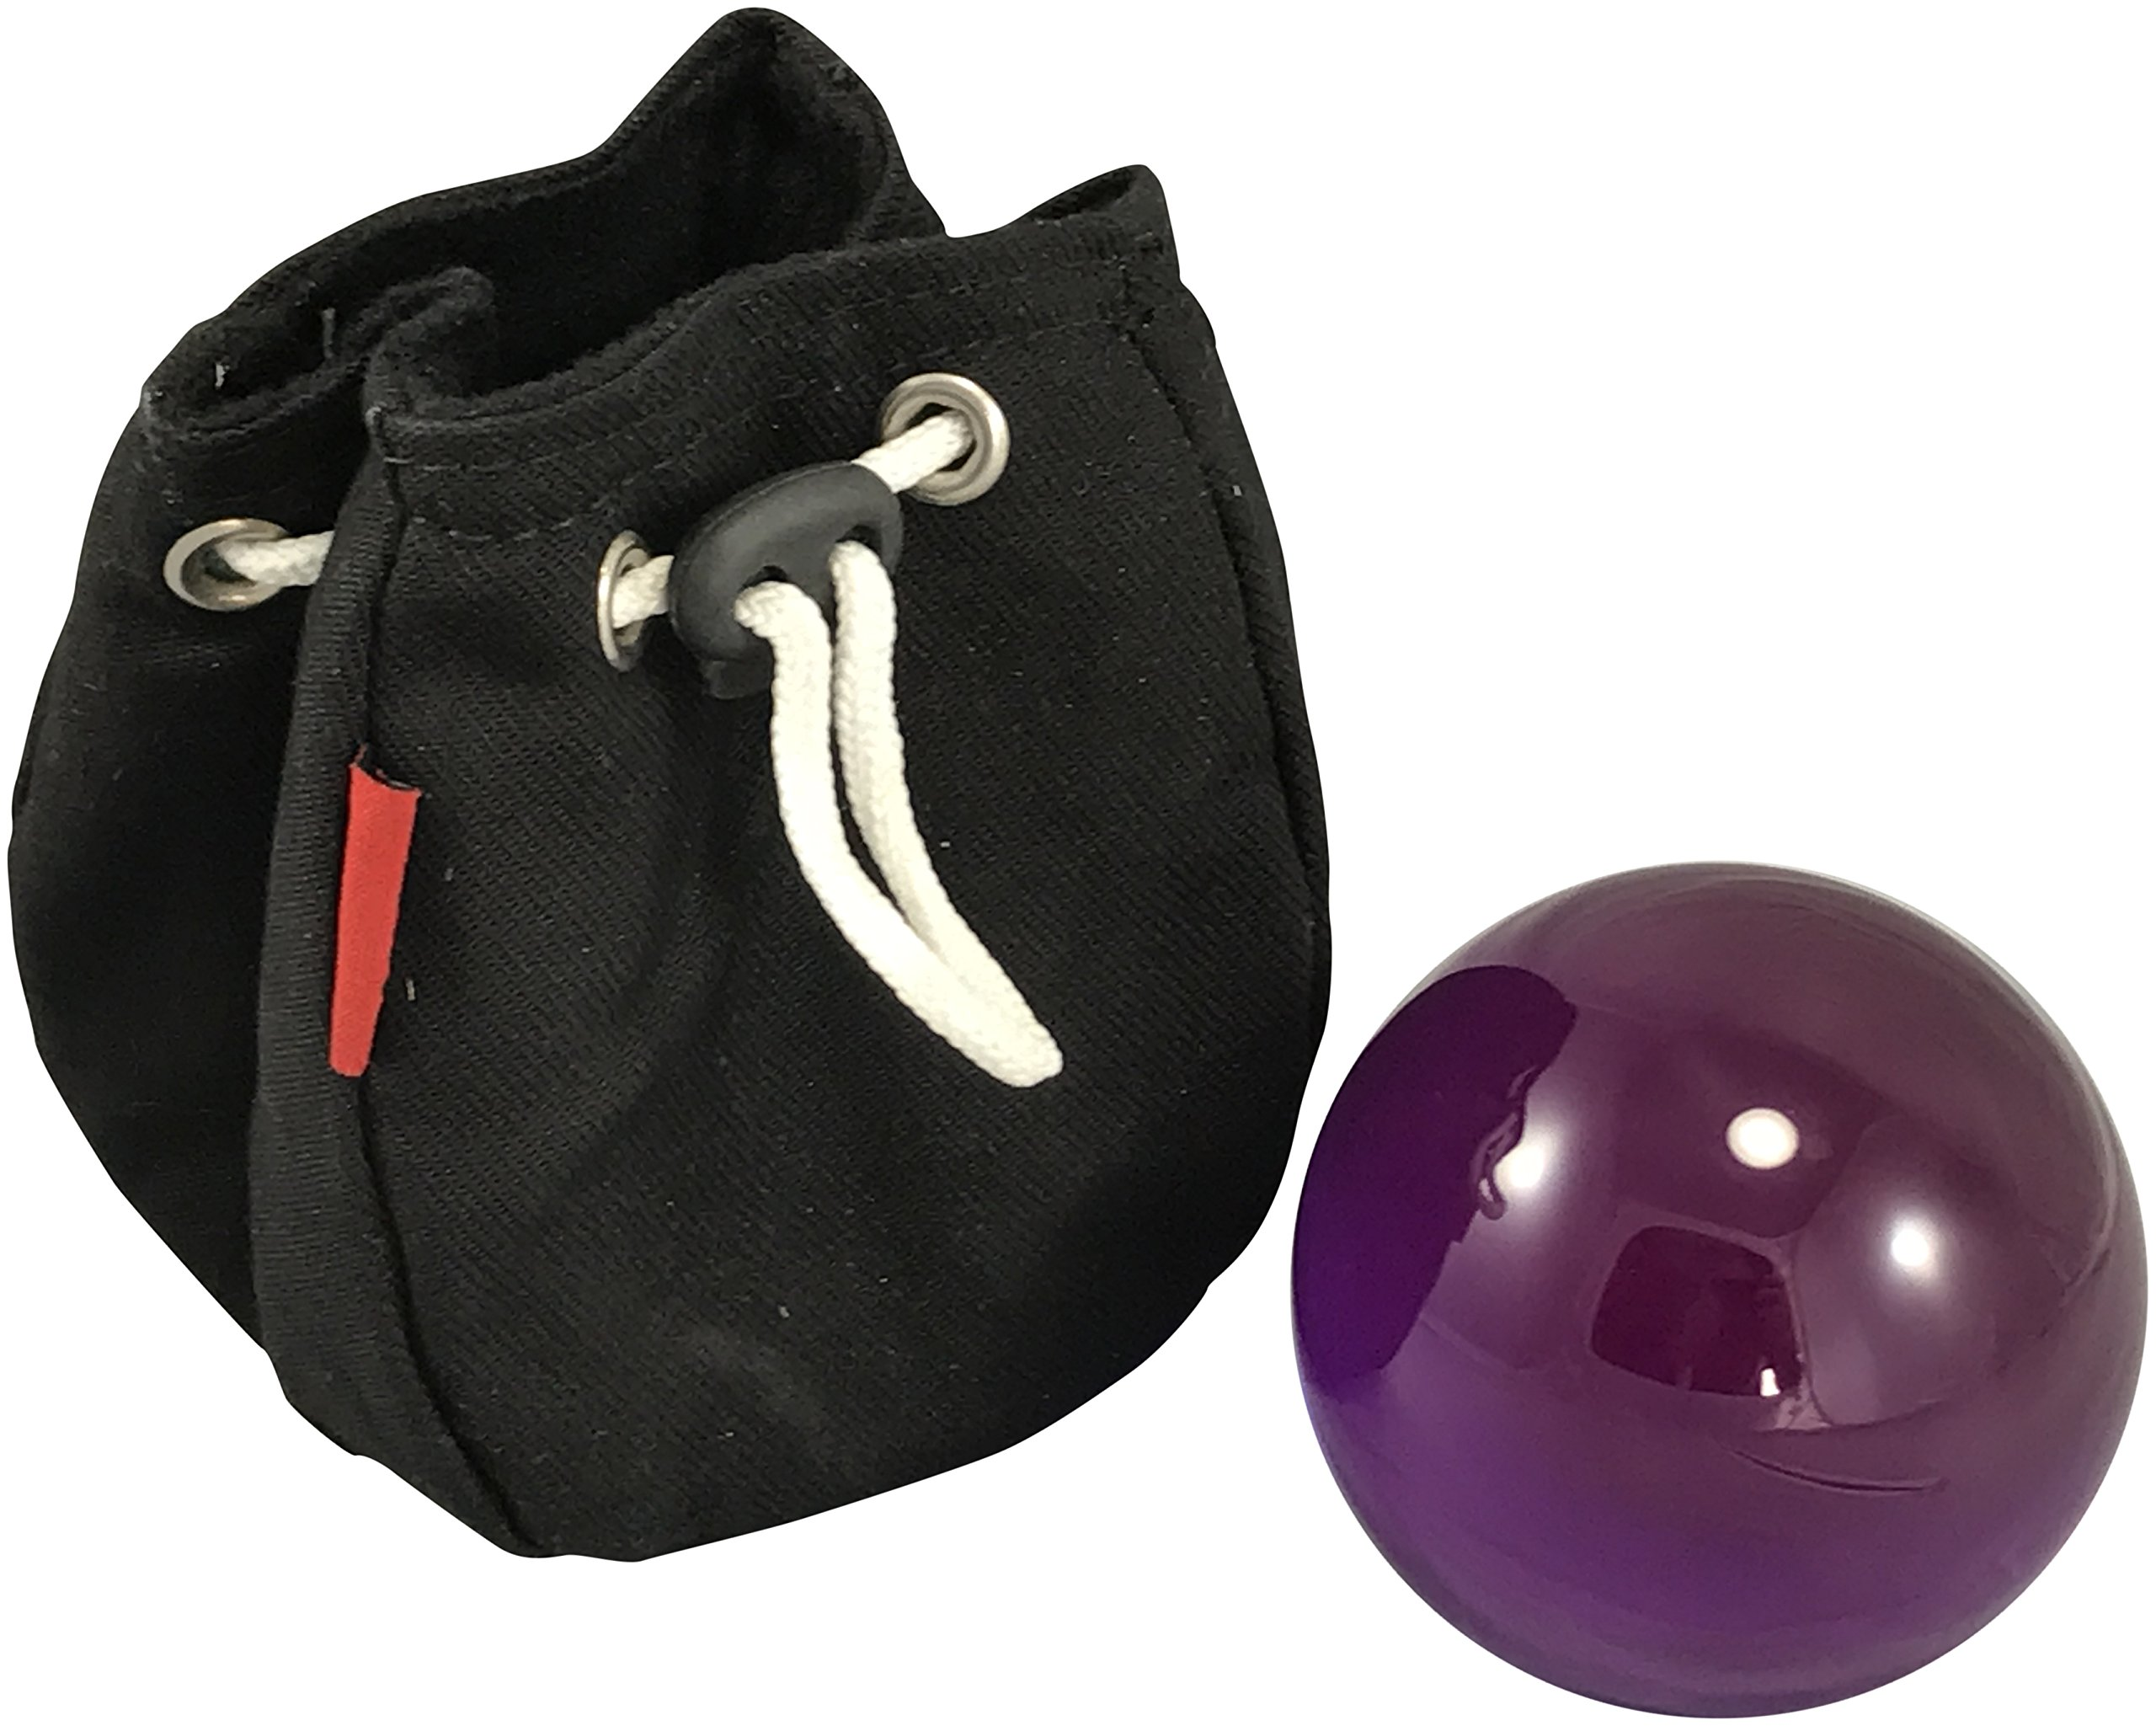 Contact Juggling Ball 75mm Acrylic Purple with Protective Bag